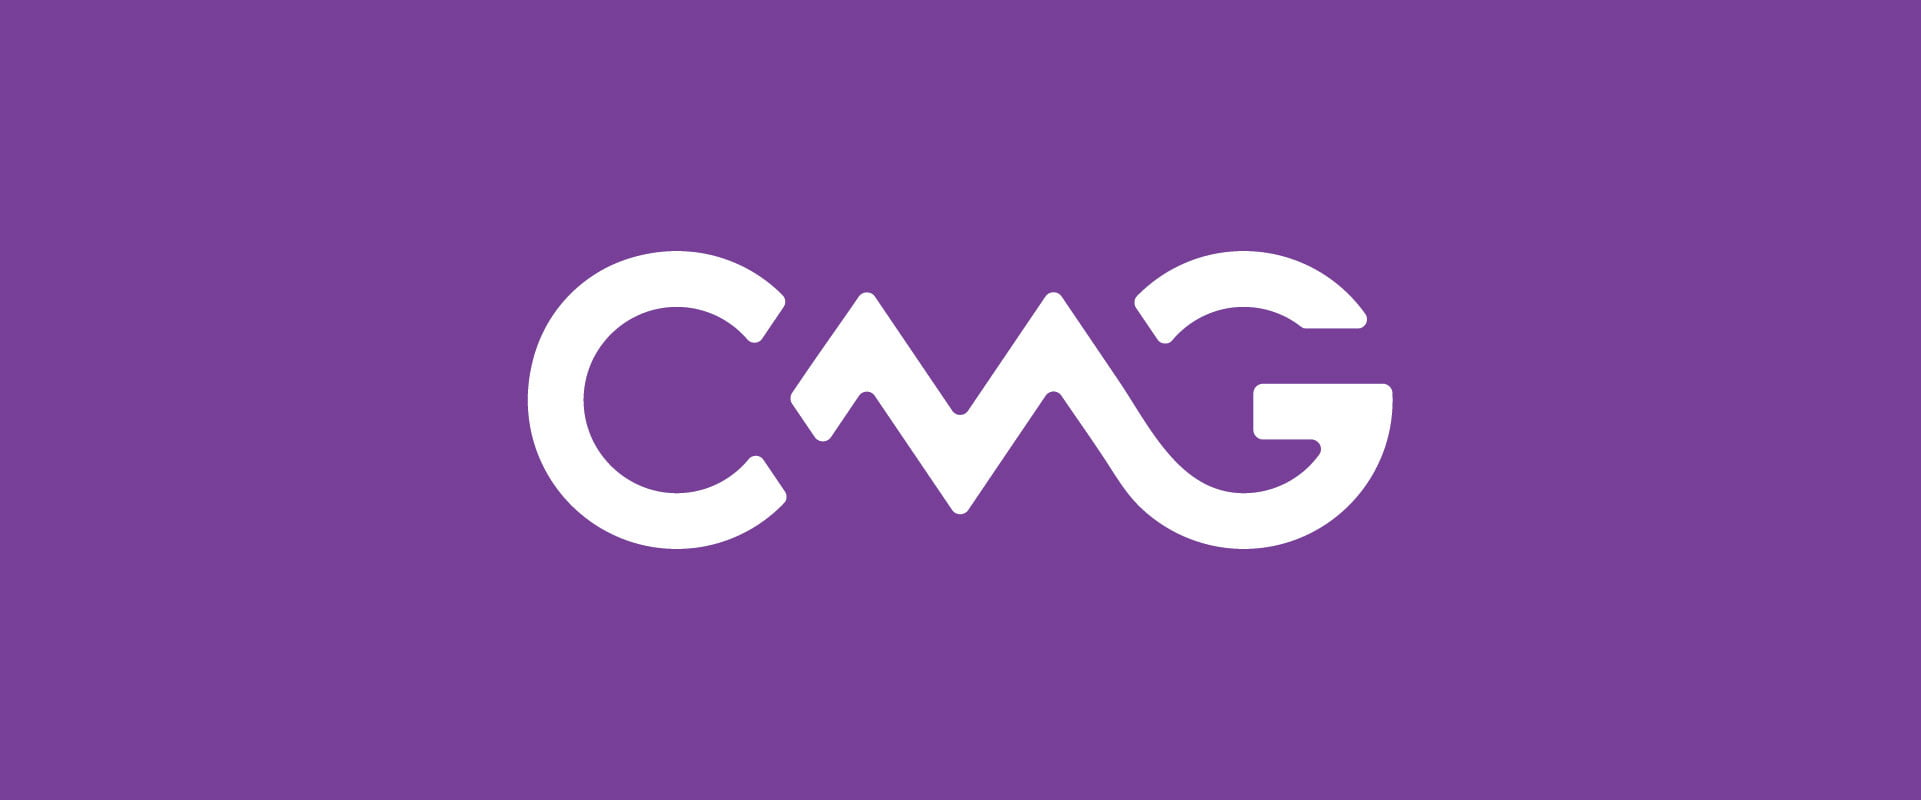 CMG-website-02